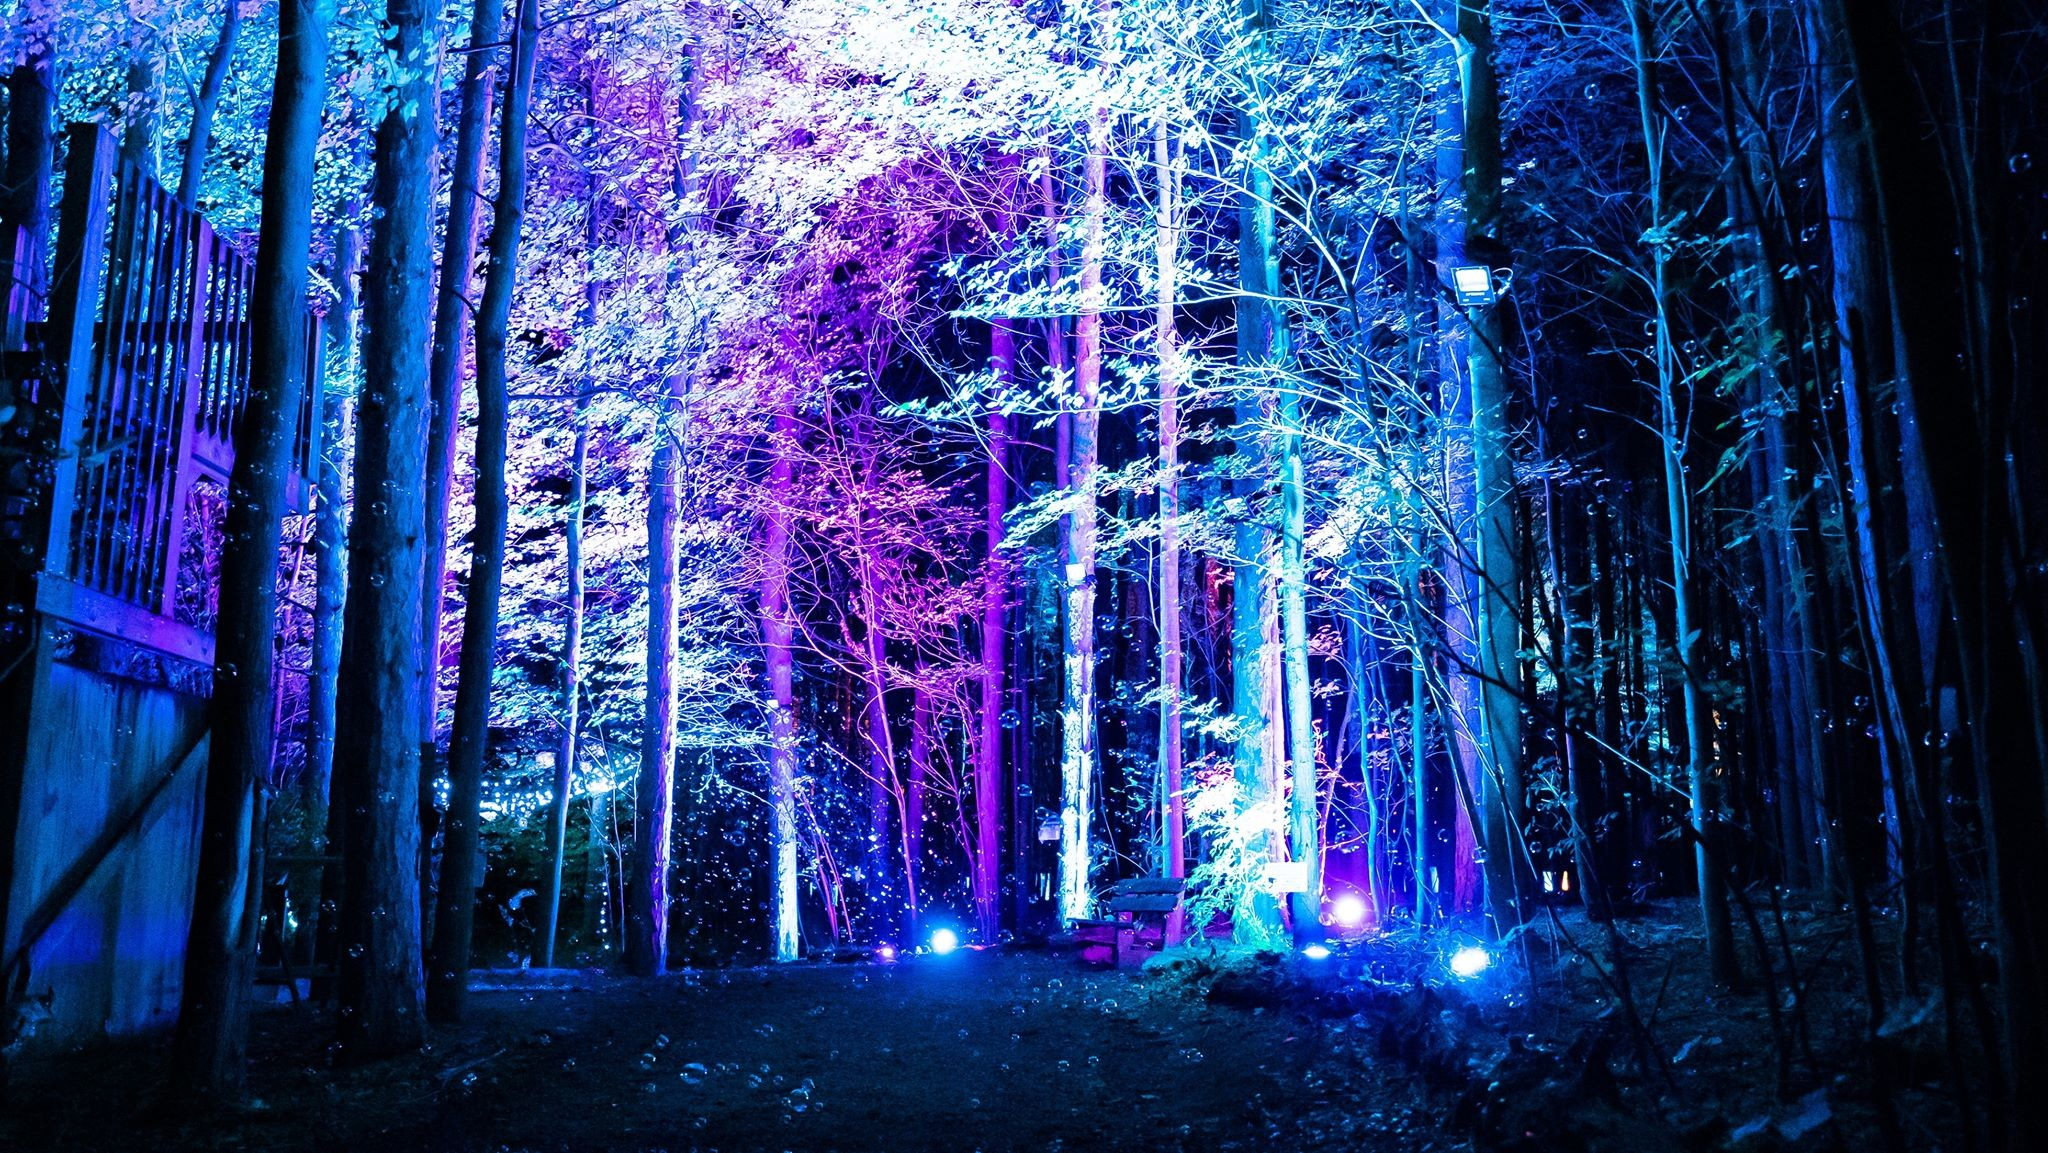 Halloween Art Shows For 2020 In Michigan There's a new trippy illuminated forest in Michigan and we want to